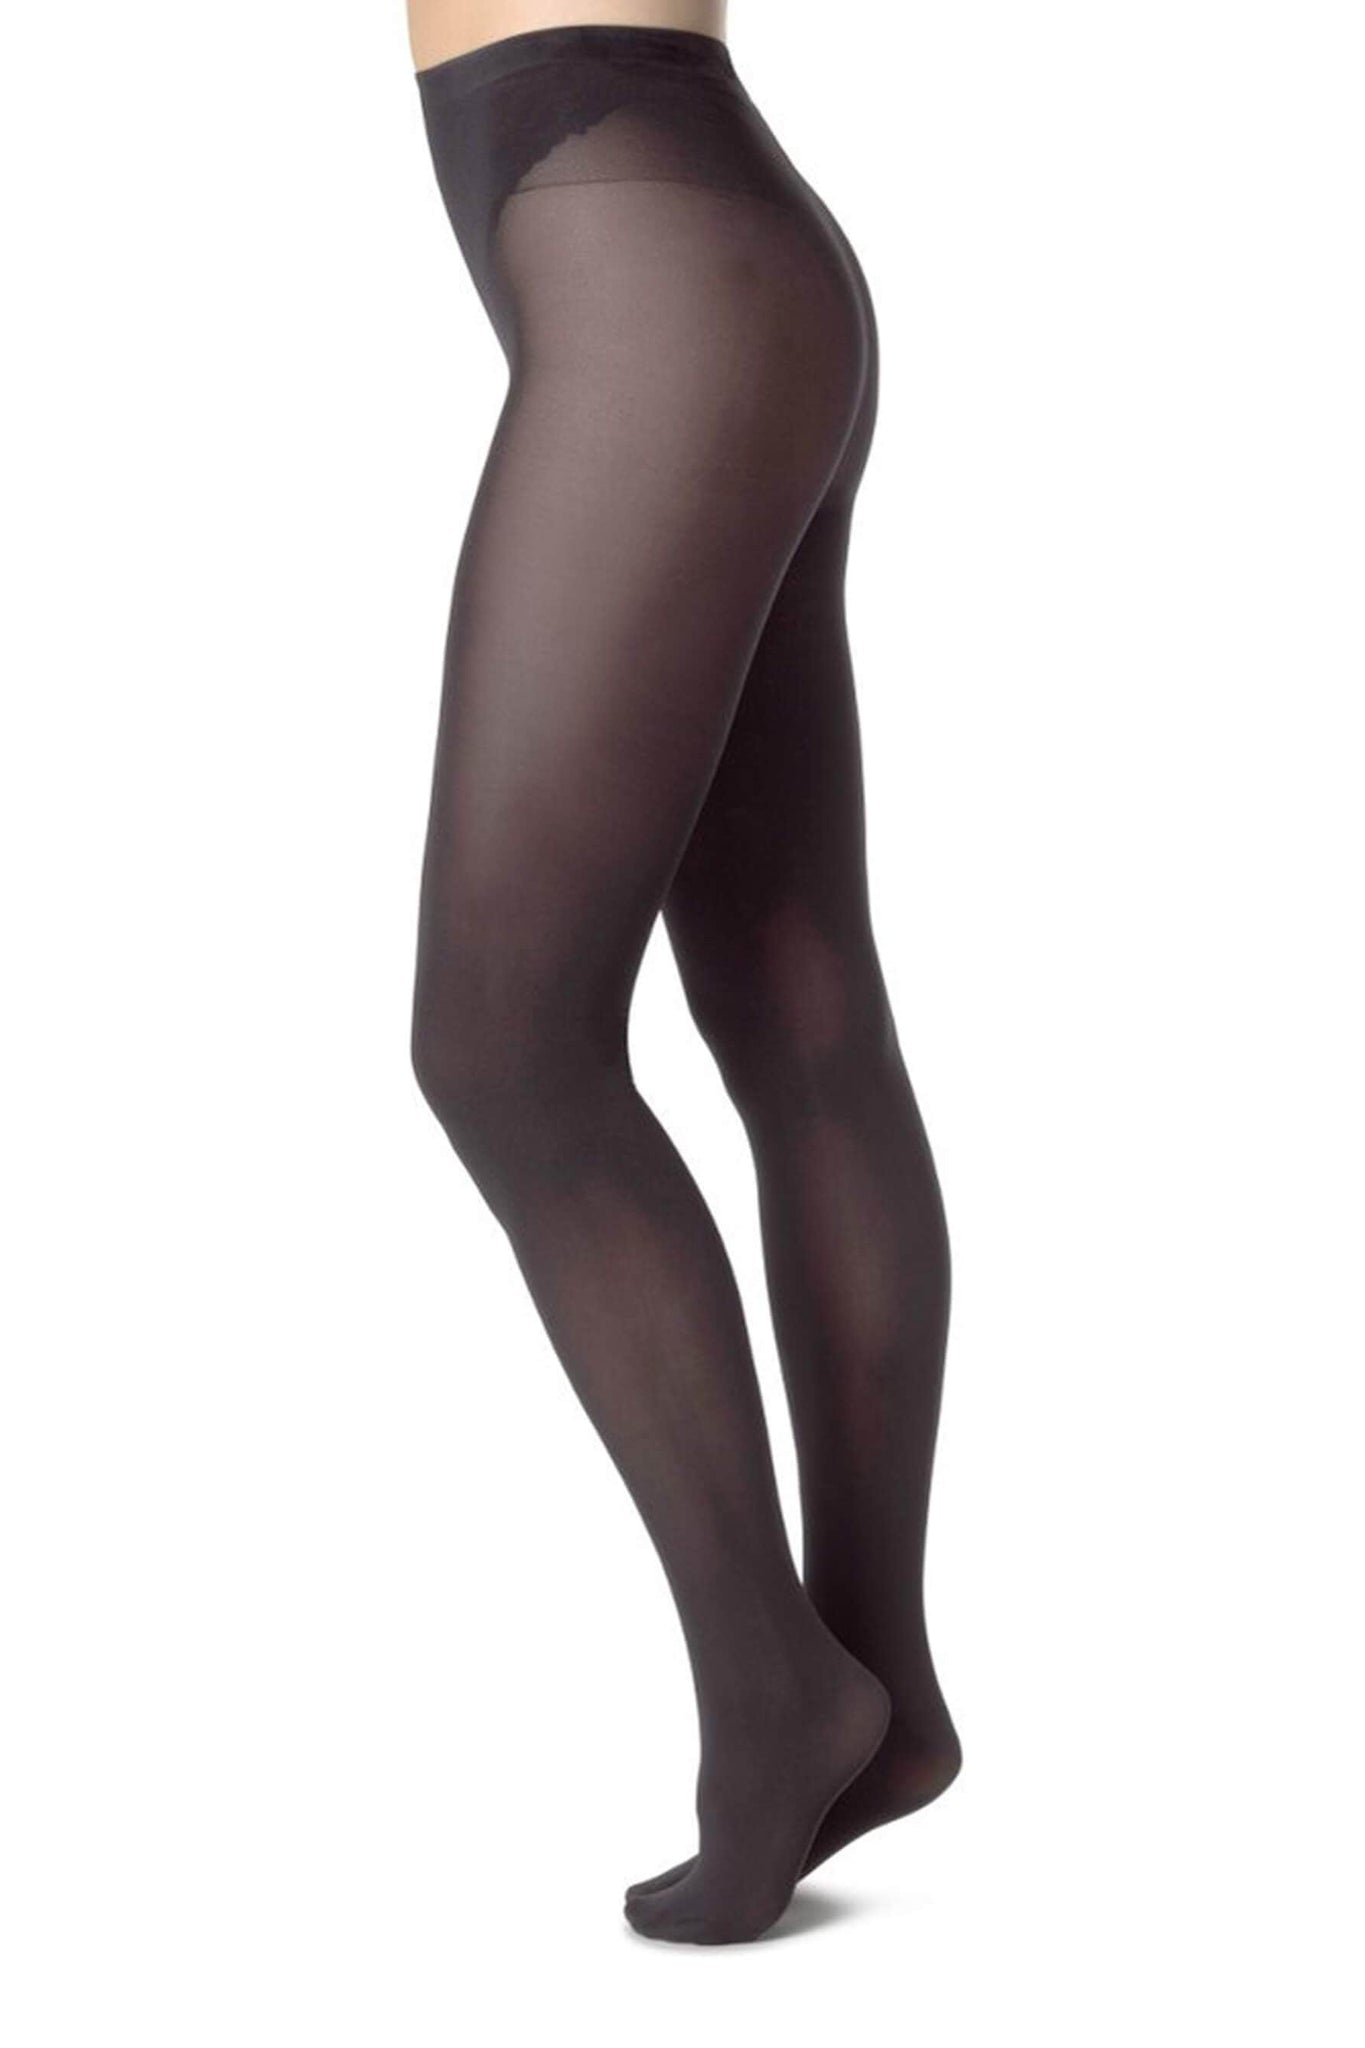 Black Sheer Elin Tights from Swedish Stockings